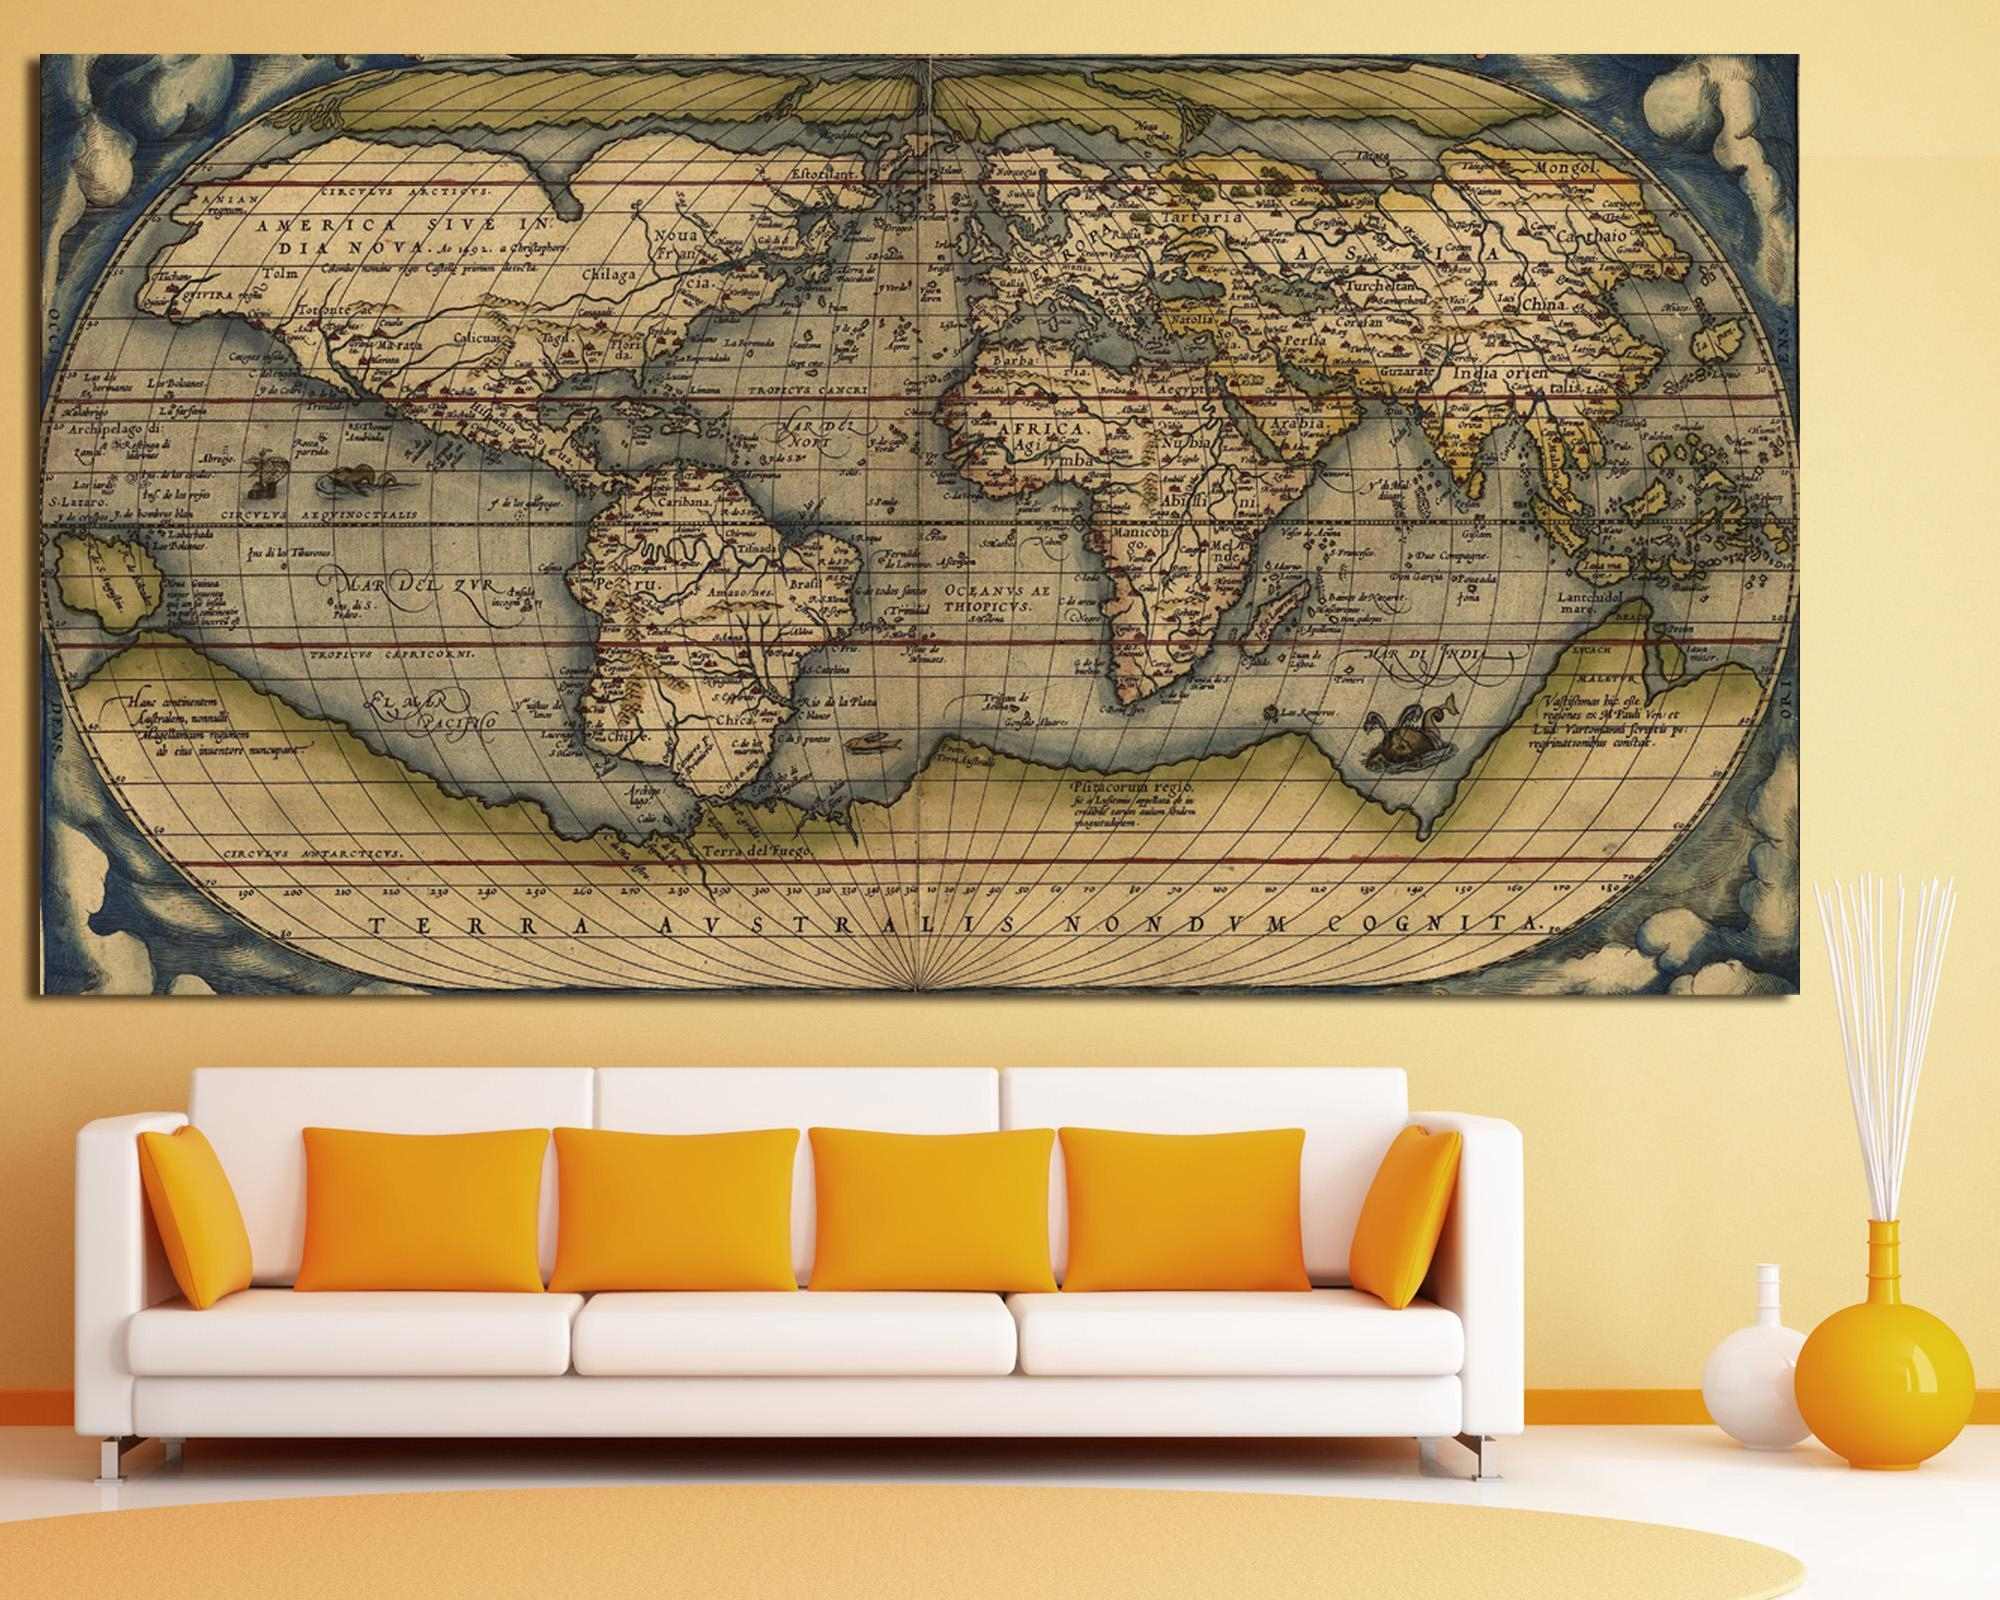 Texelprintart Studio – Canvas Wall Art Print For Home Decoration Inside Large Vintage Wall Art (View 7 of 20)